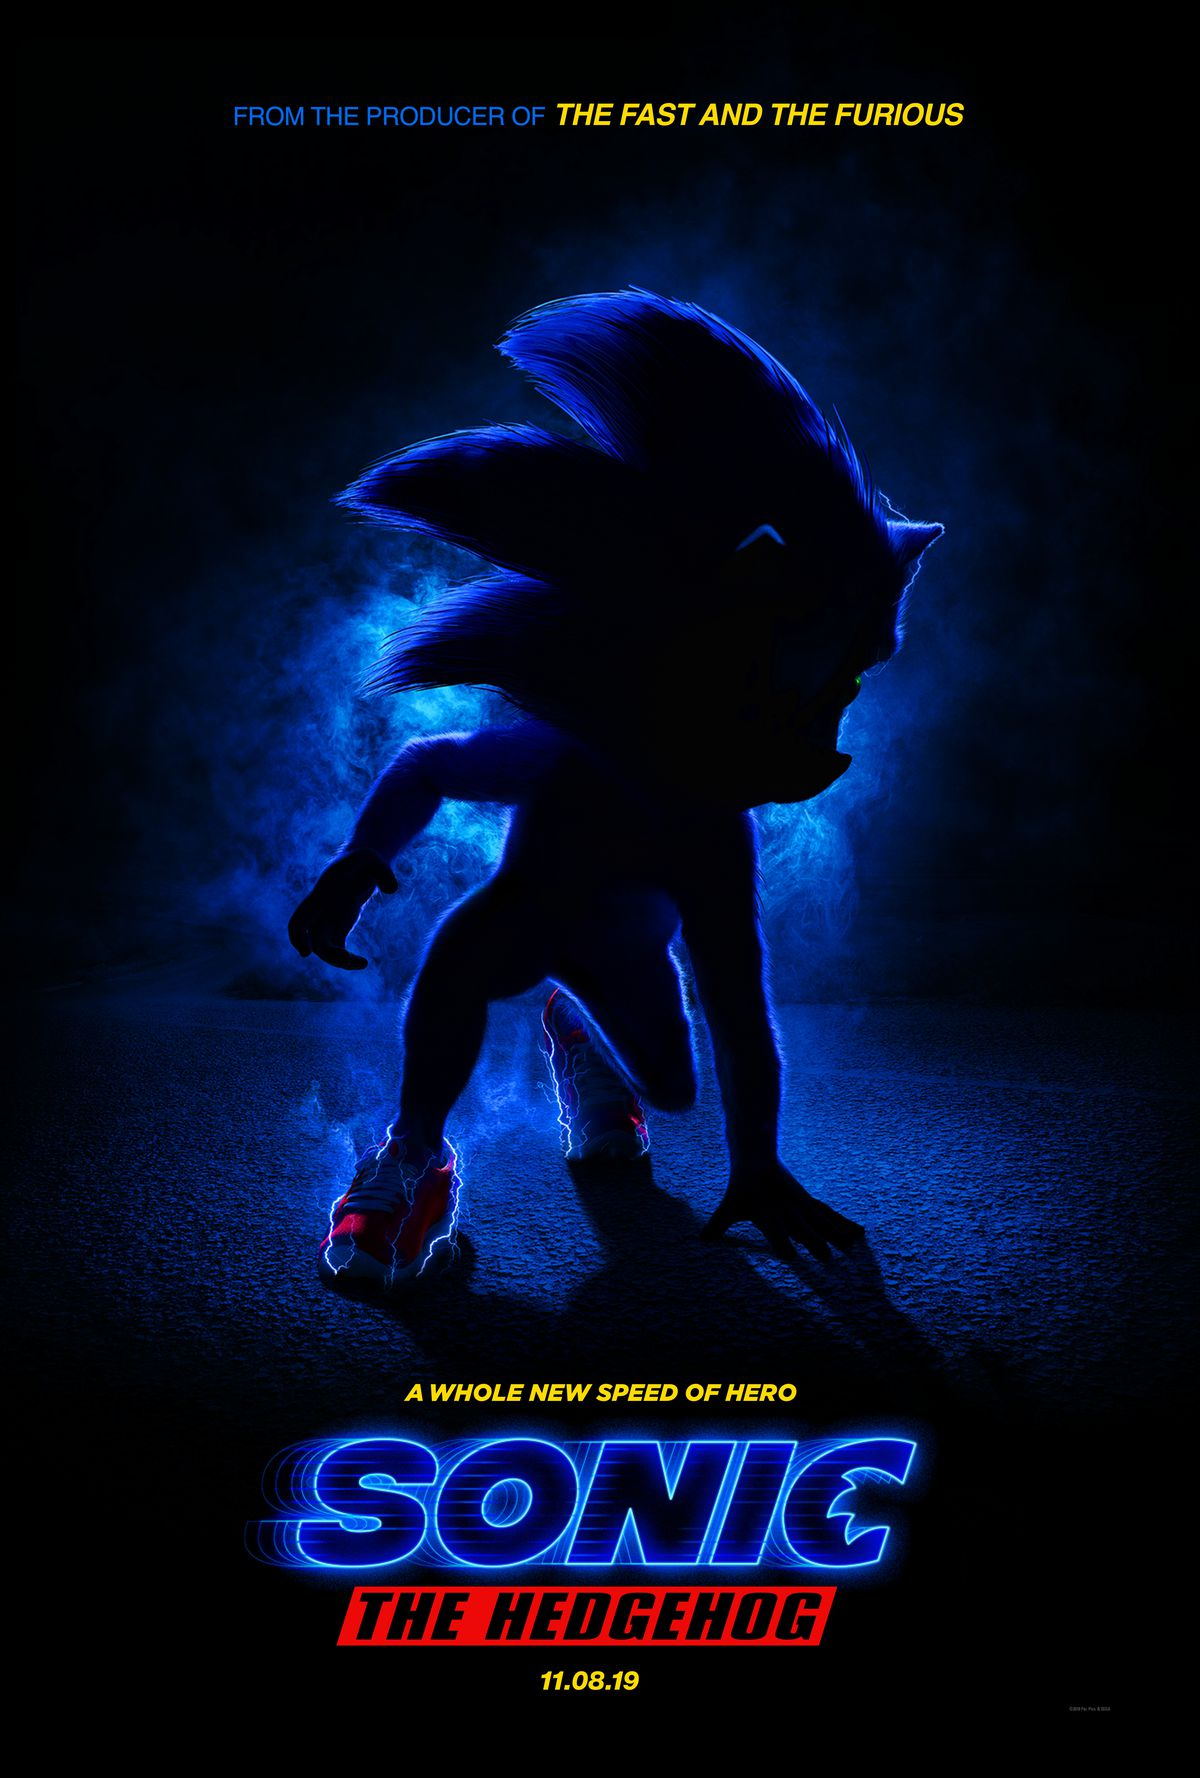 Here S Your First Look At Sonic The Hedgehog S Live Action Version Polygon